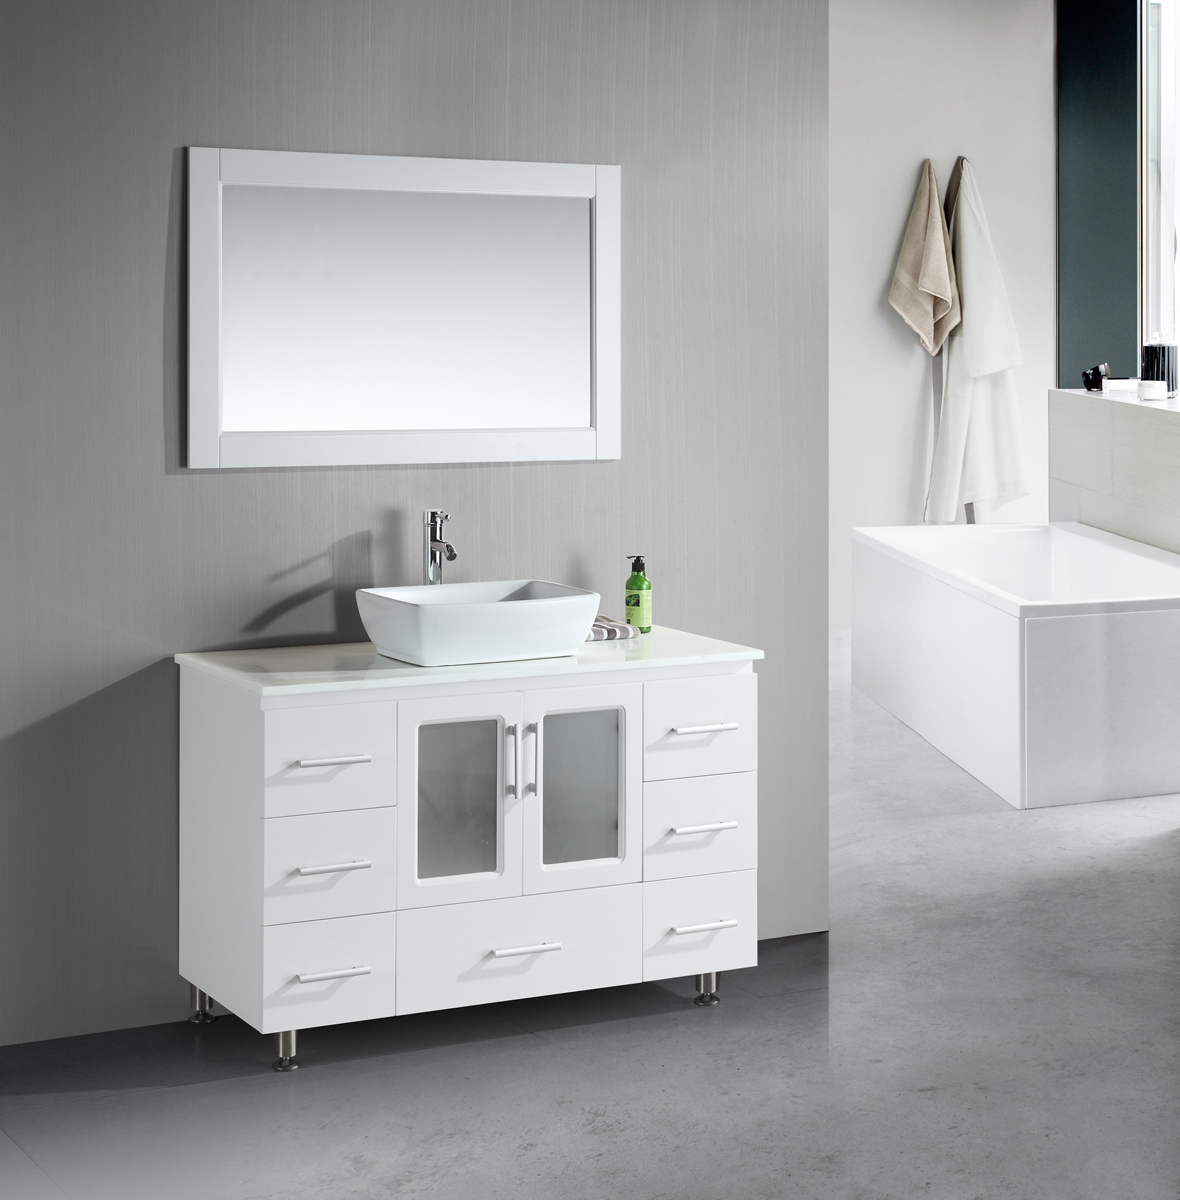 Small bathroom vanities with vessel sinks to create cool and stylish vibes for your tiny bath - Small space bathroom vanities minimalist ...